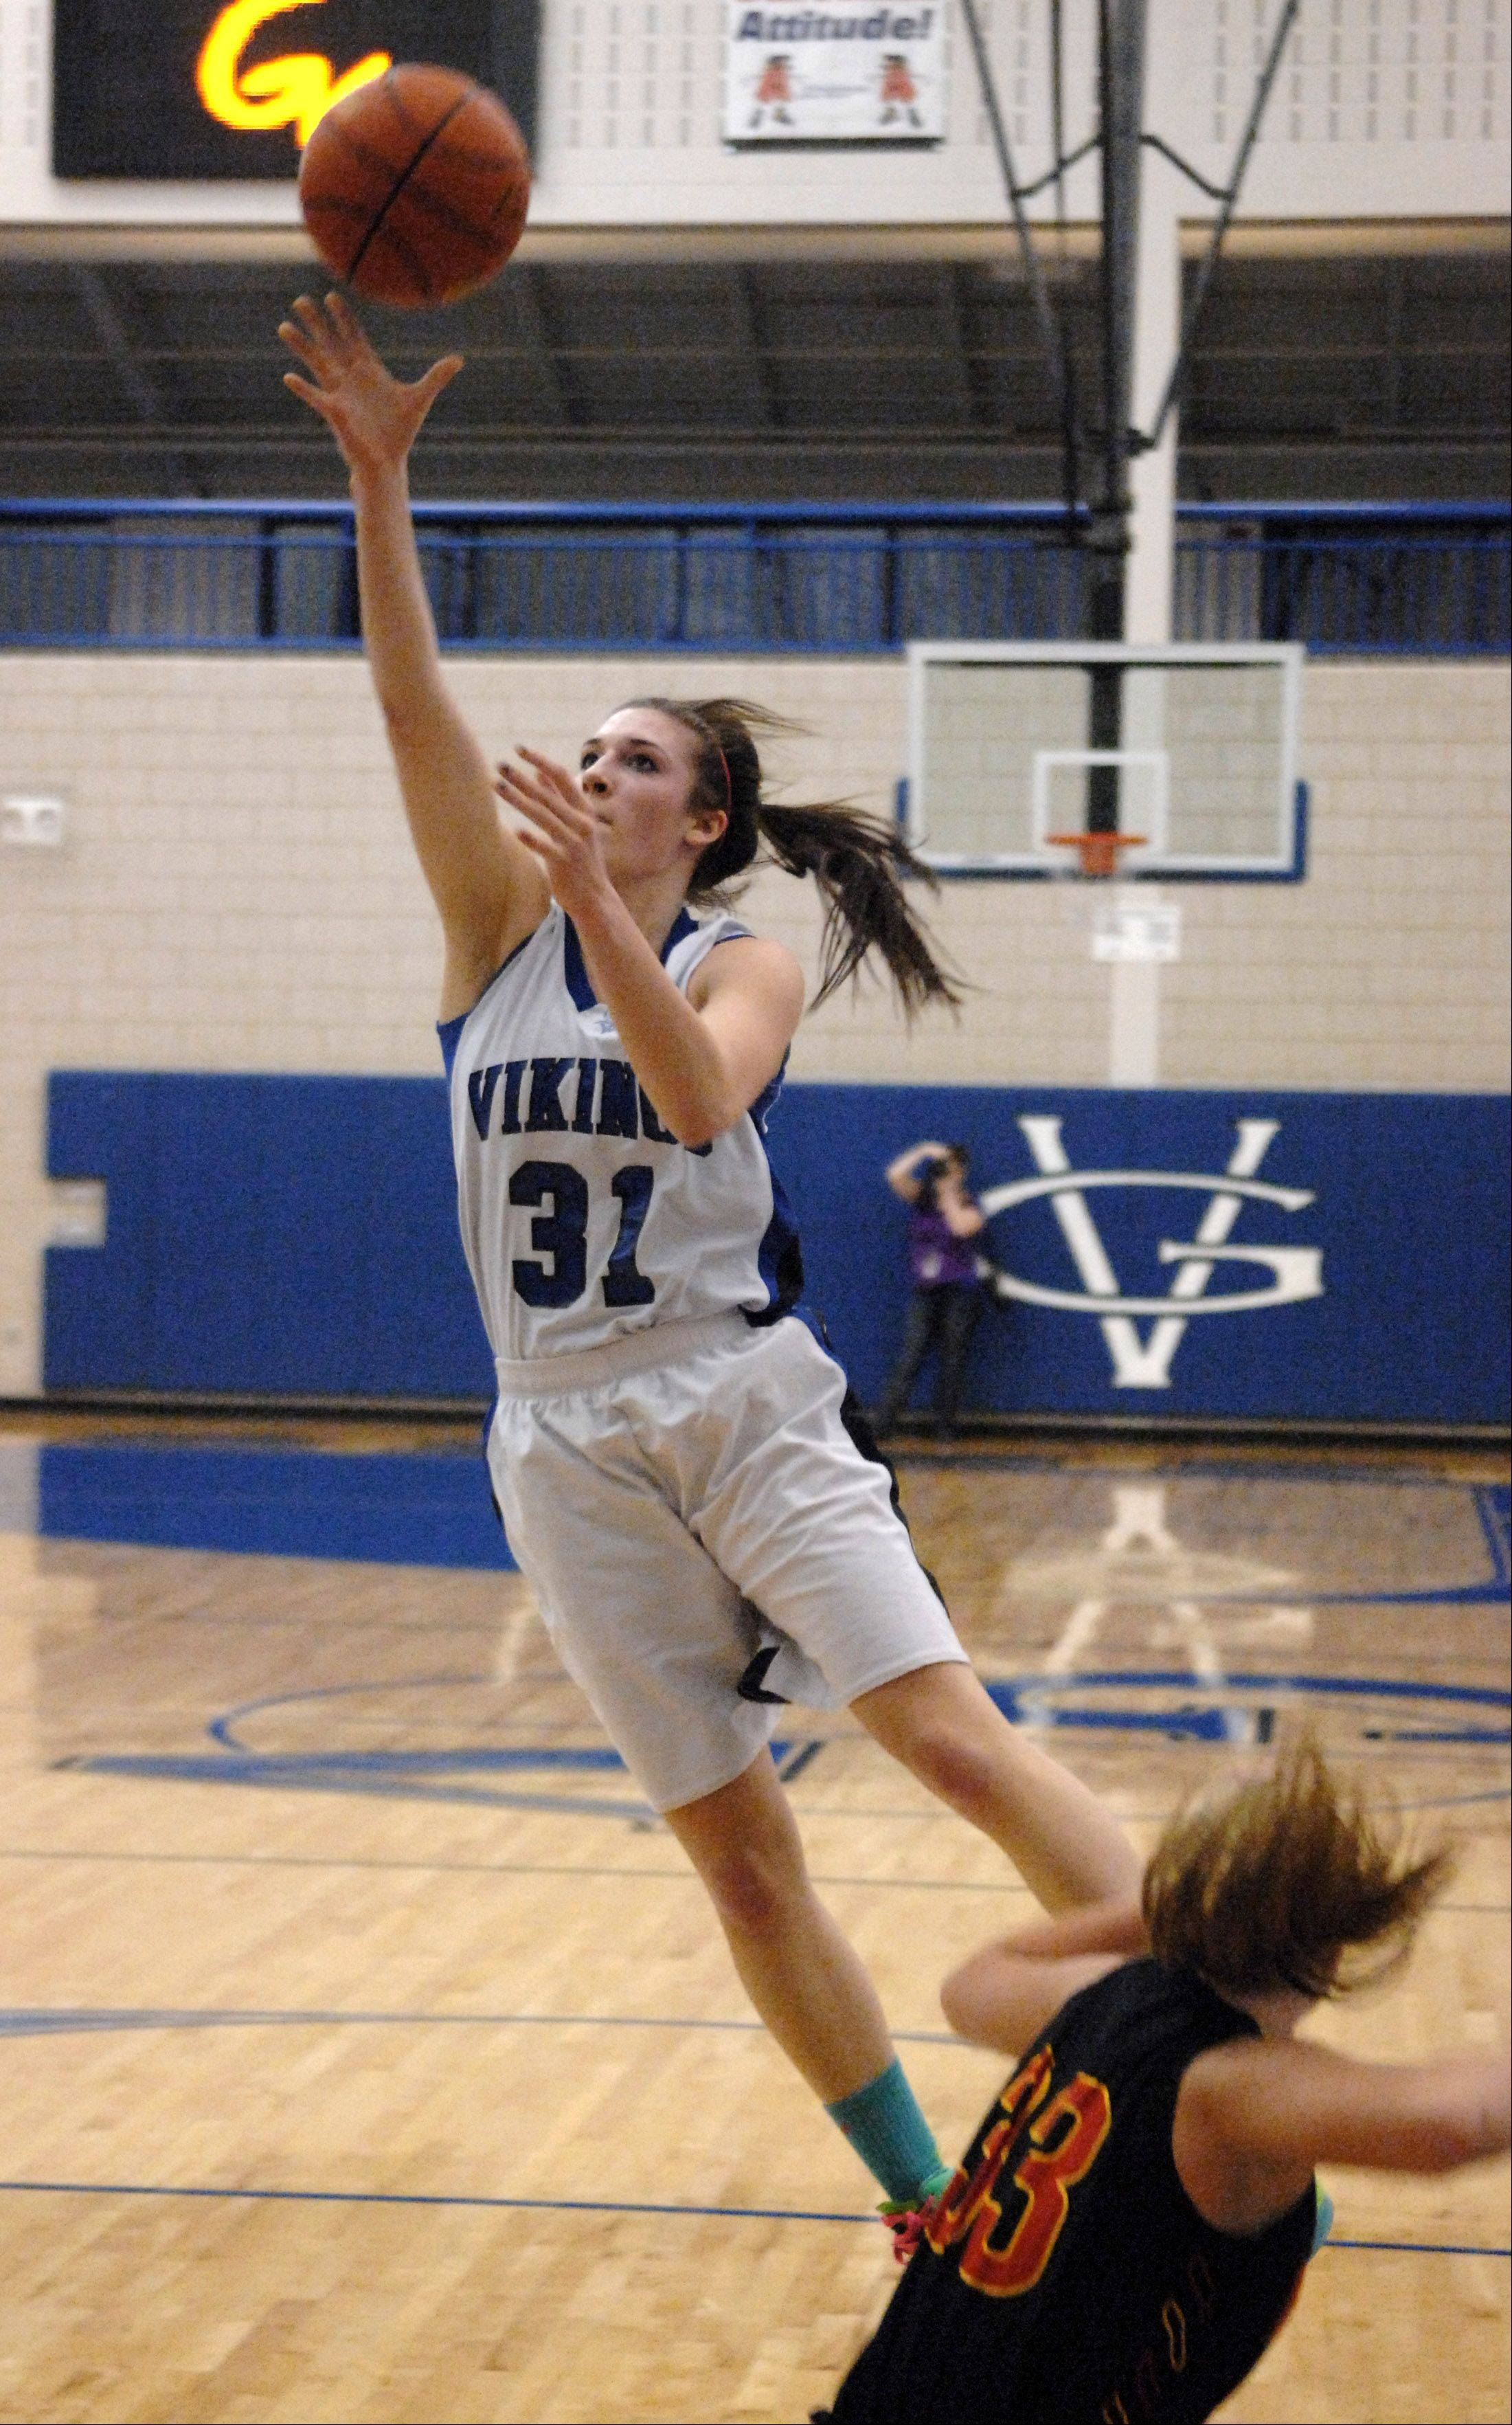 Images from the Batavia vs. Geneva girls basketball game Friday, November 30, 2012.